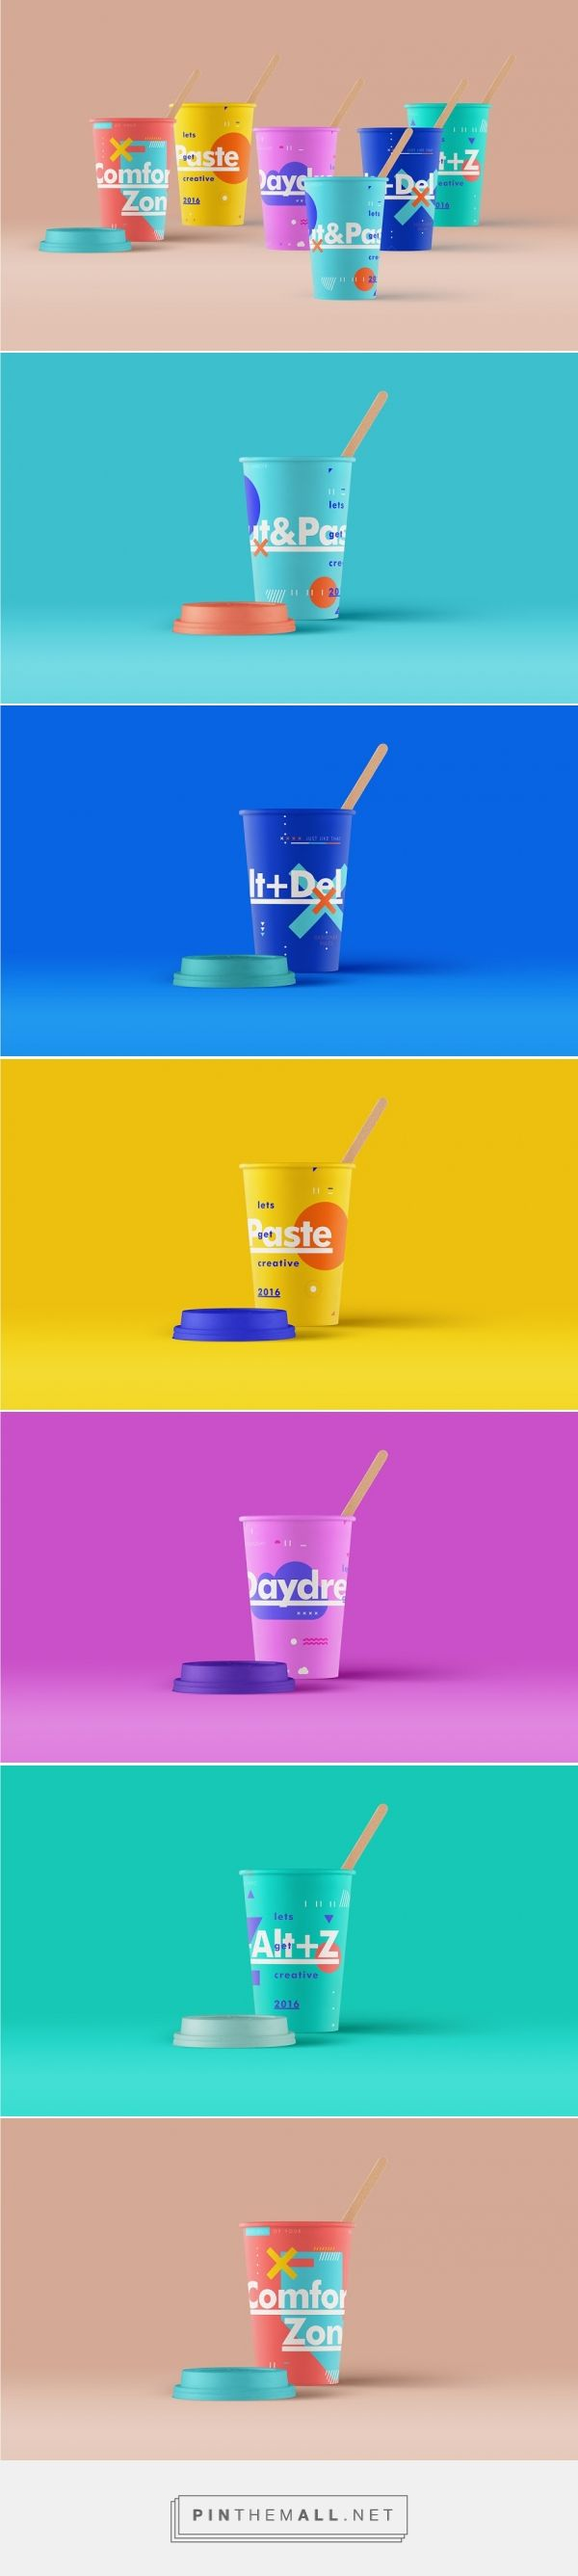 Let's Get Creative with Design Quotes by STUDIO JQ (UK) - http://www.packagingoftheworld.com/2016/05/lets-get-creative-2016.html